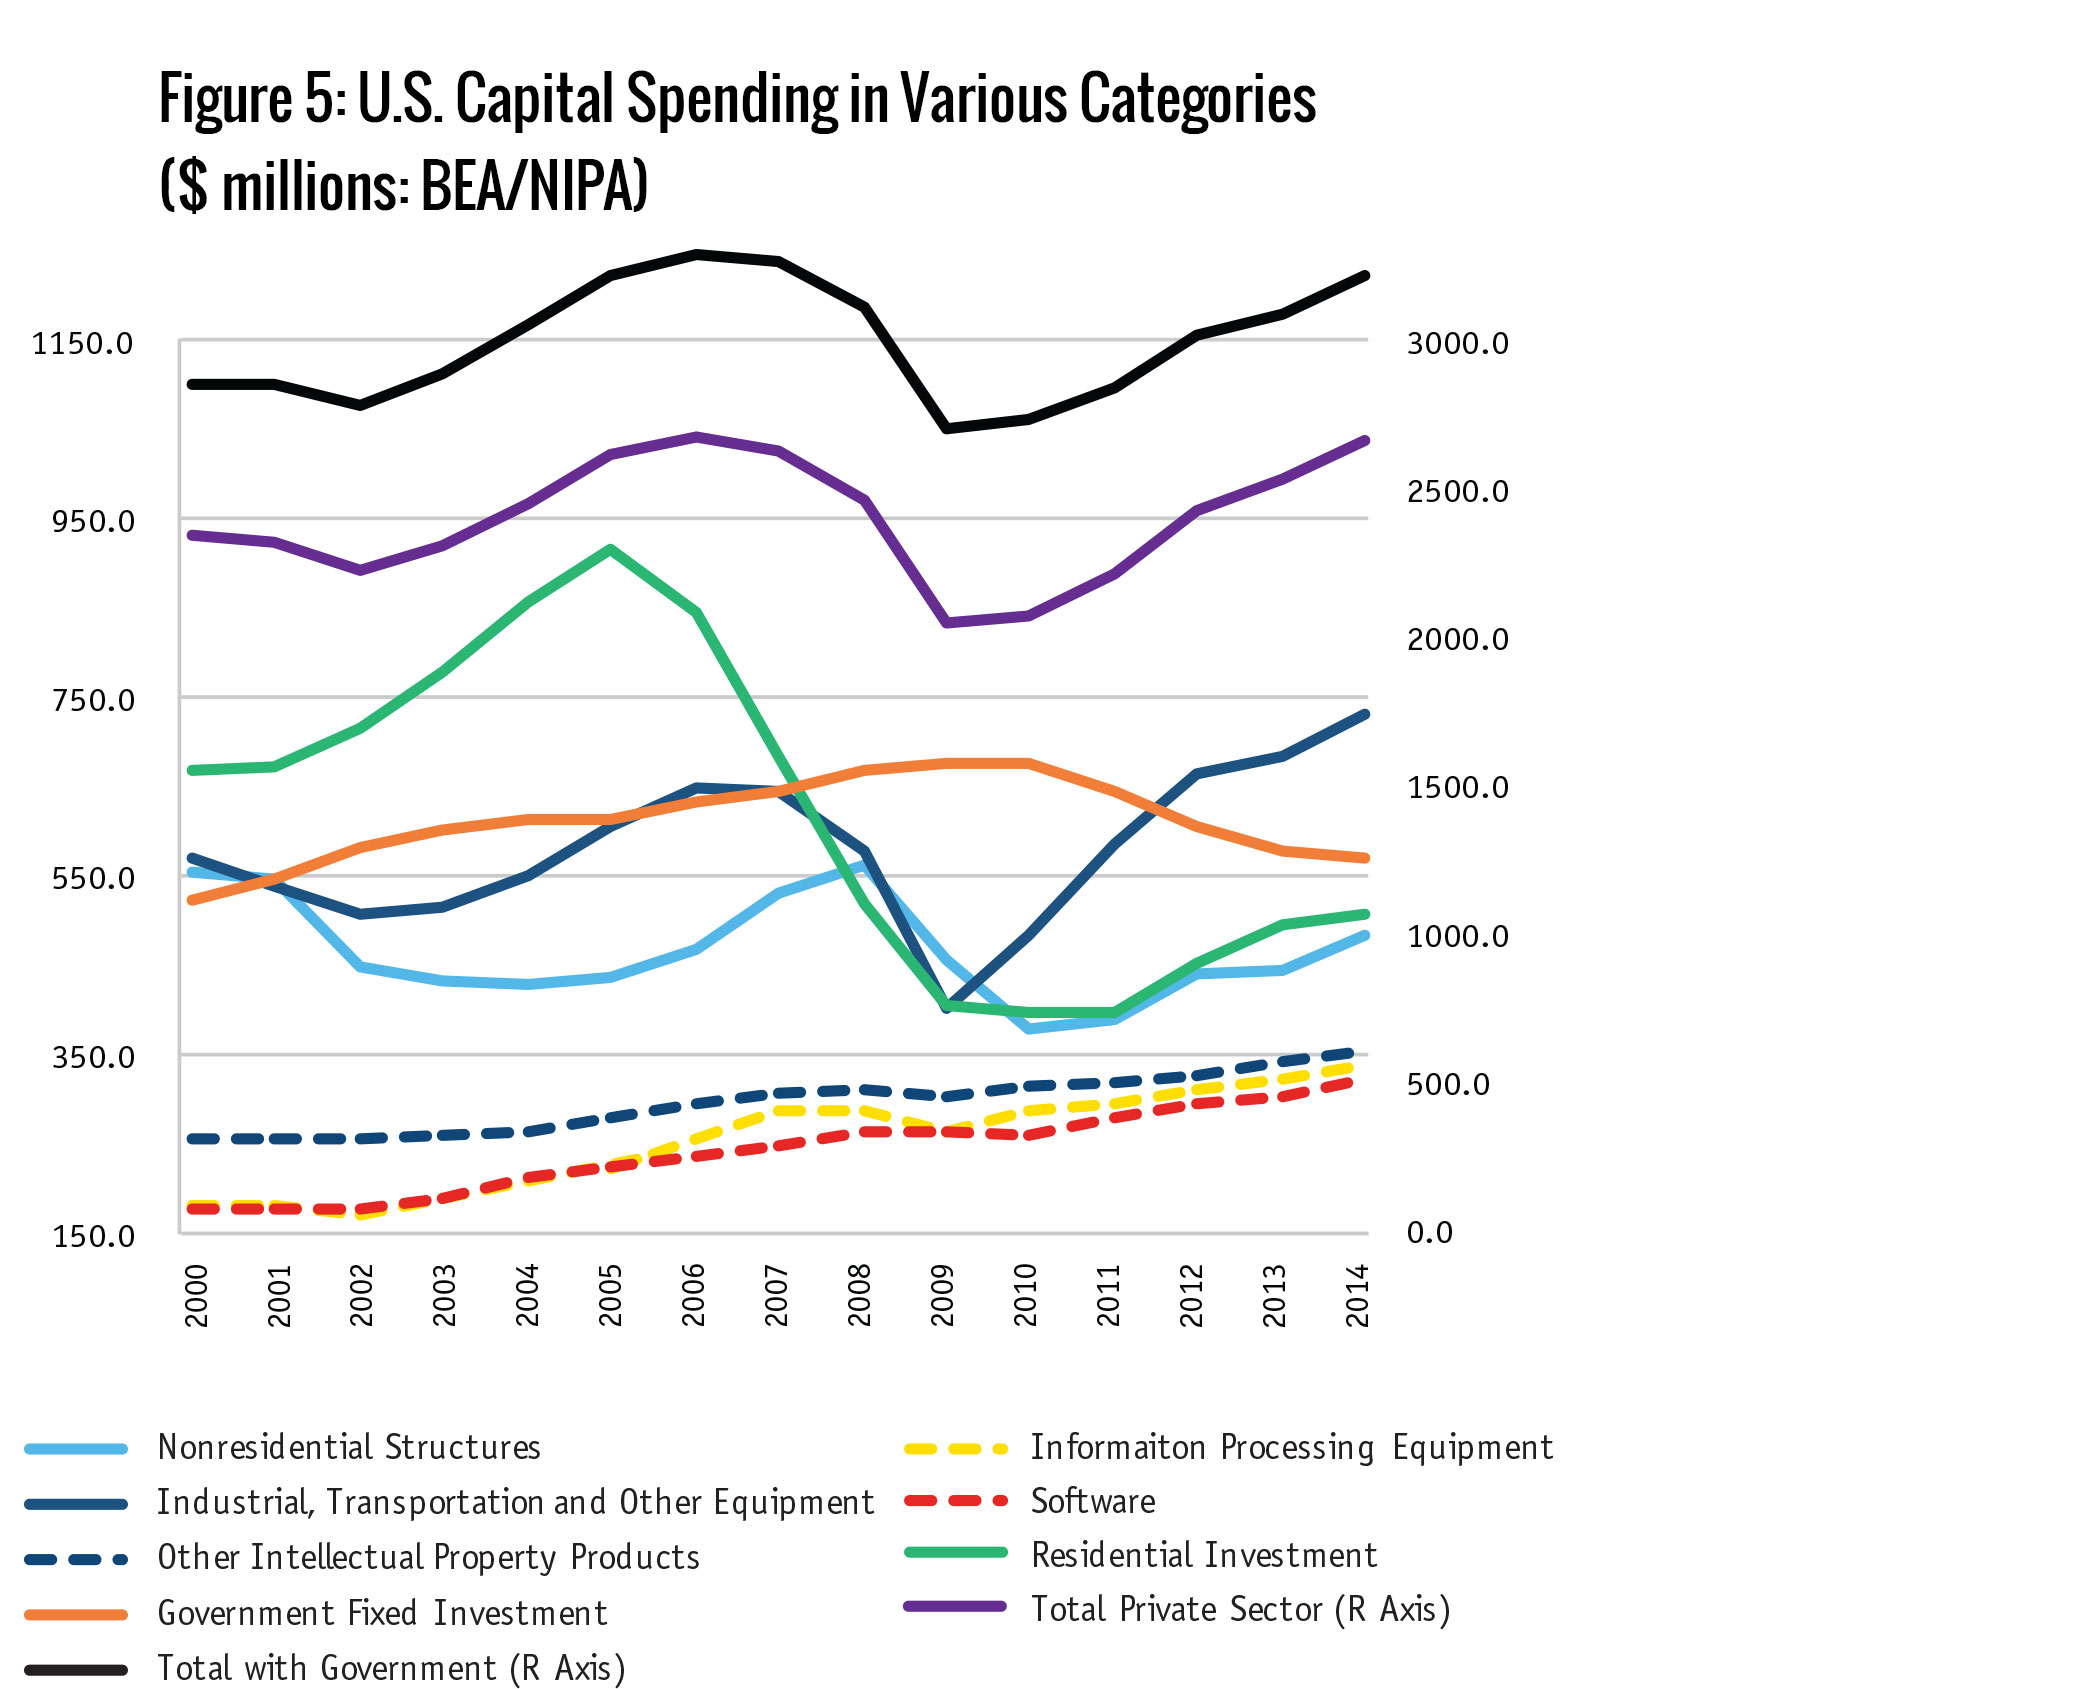 Figure 5: U.S. Capital Spending in Various Categories